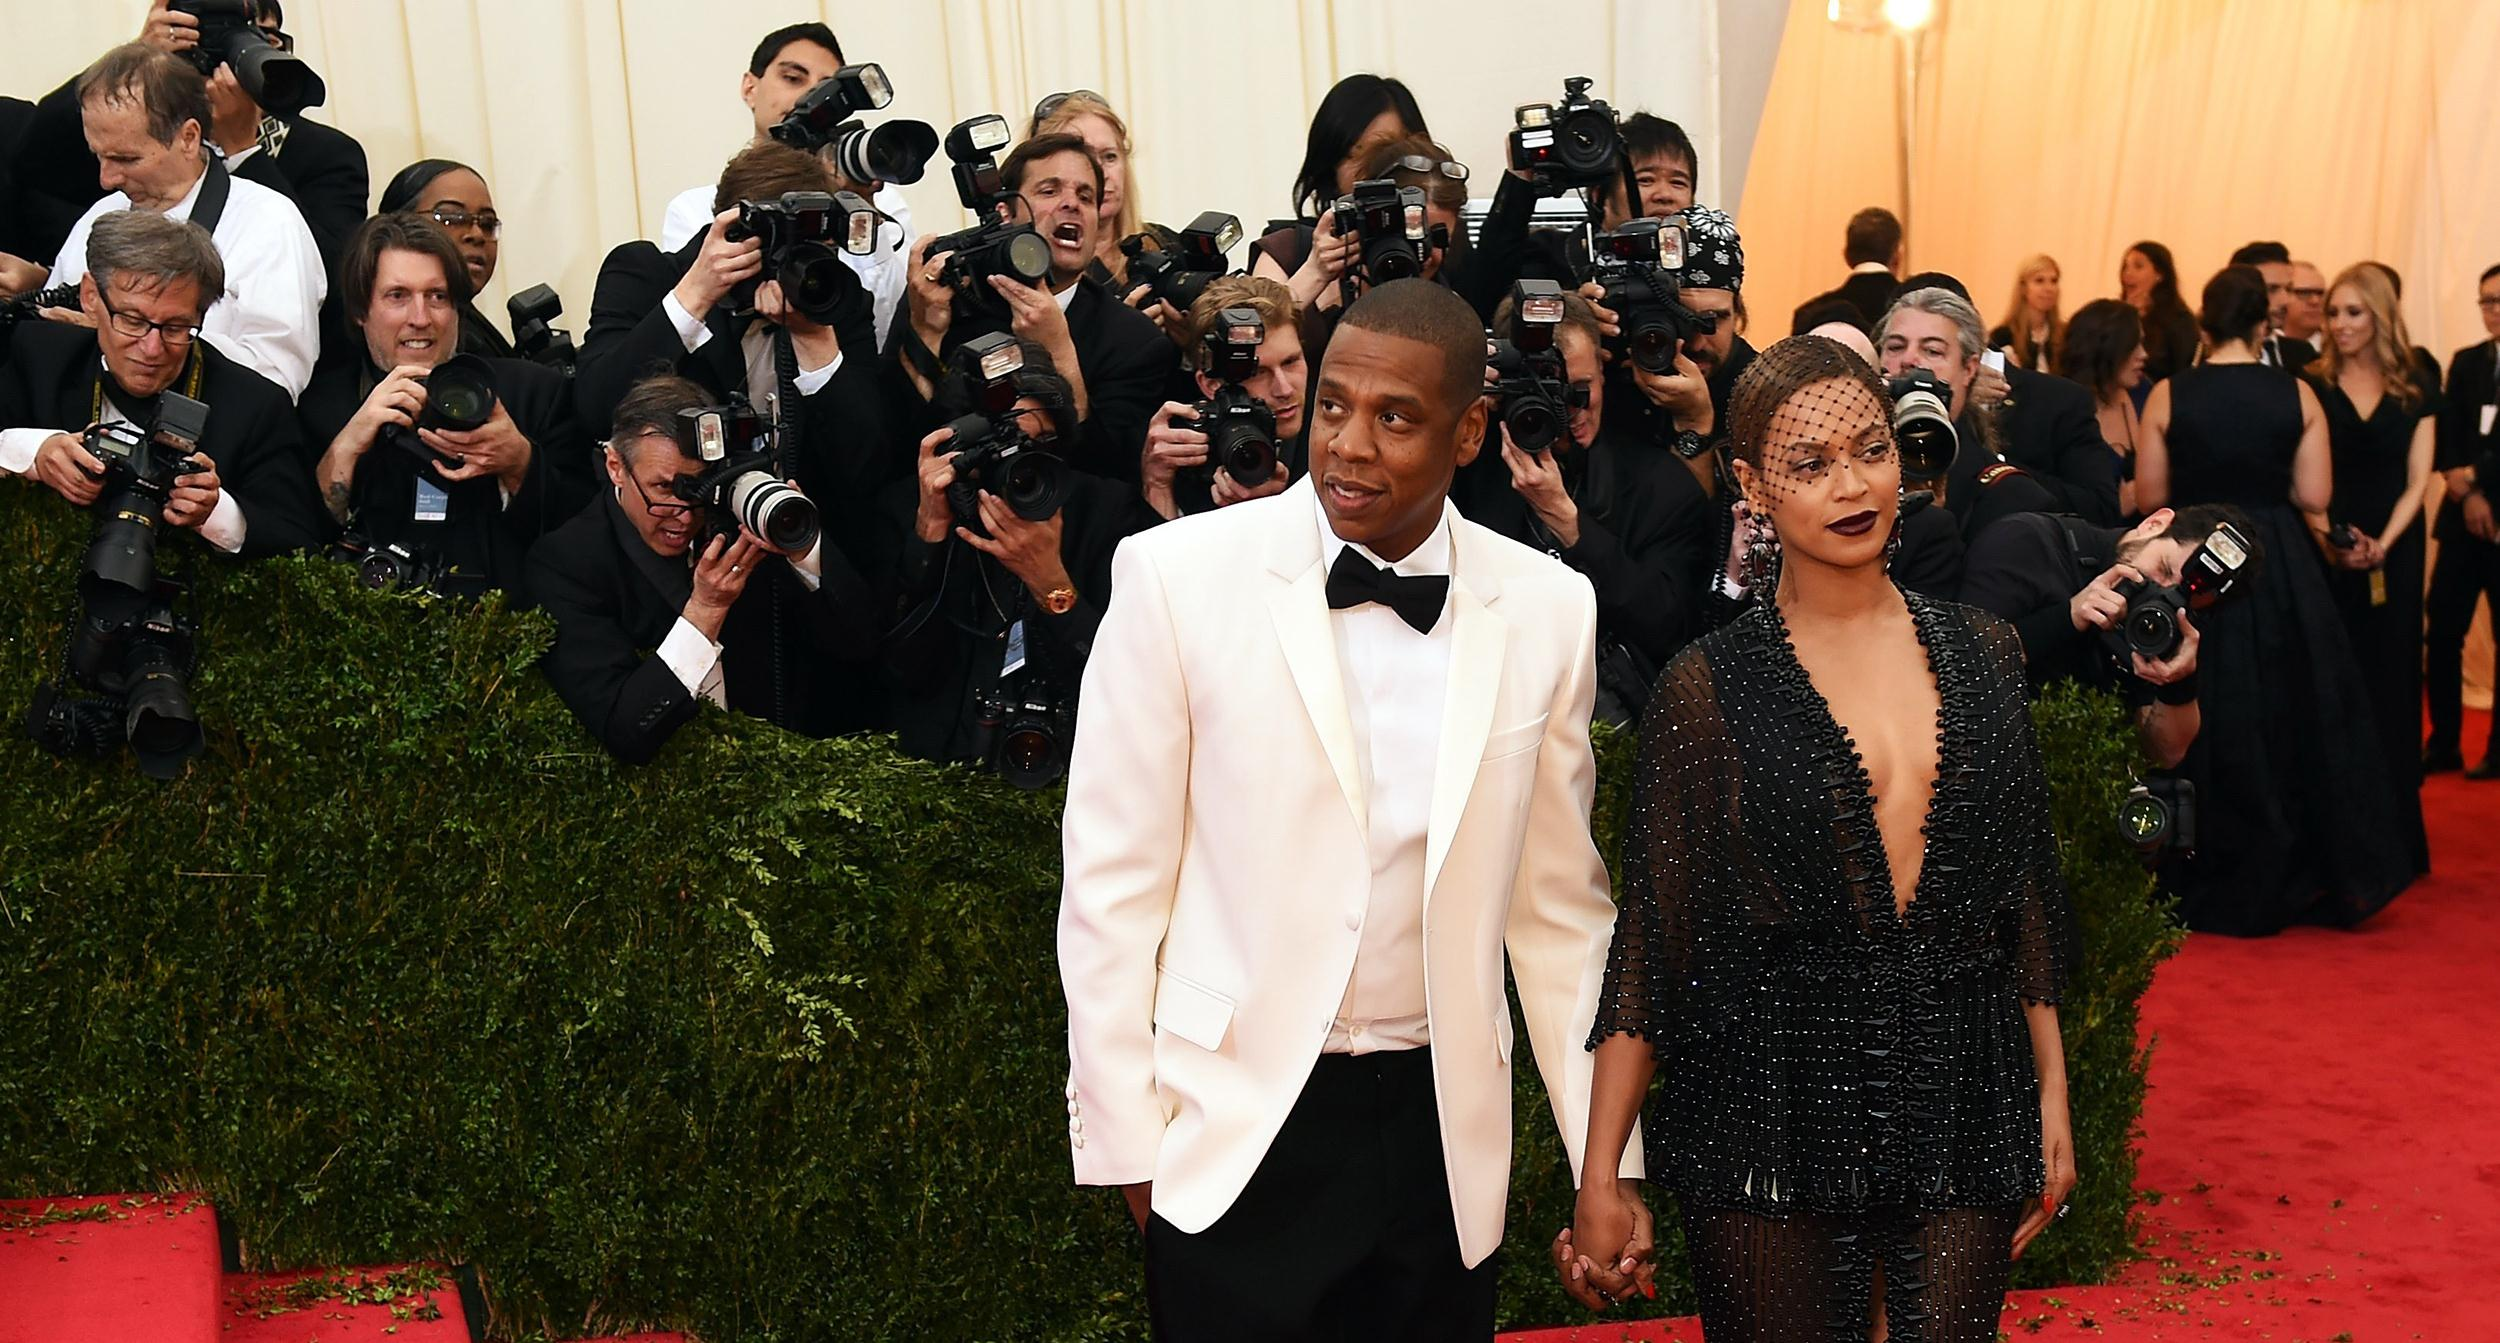 Image: Jay-Z and Beyonce arrive at the Costume Institute Benefit at The Metropolitan Museum of Art May 5.